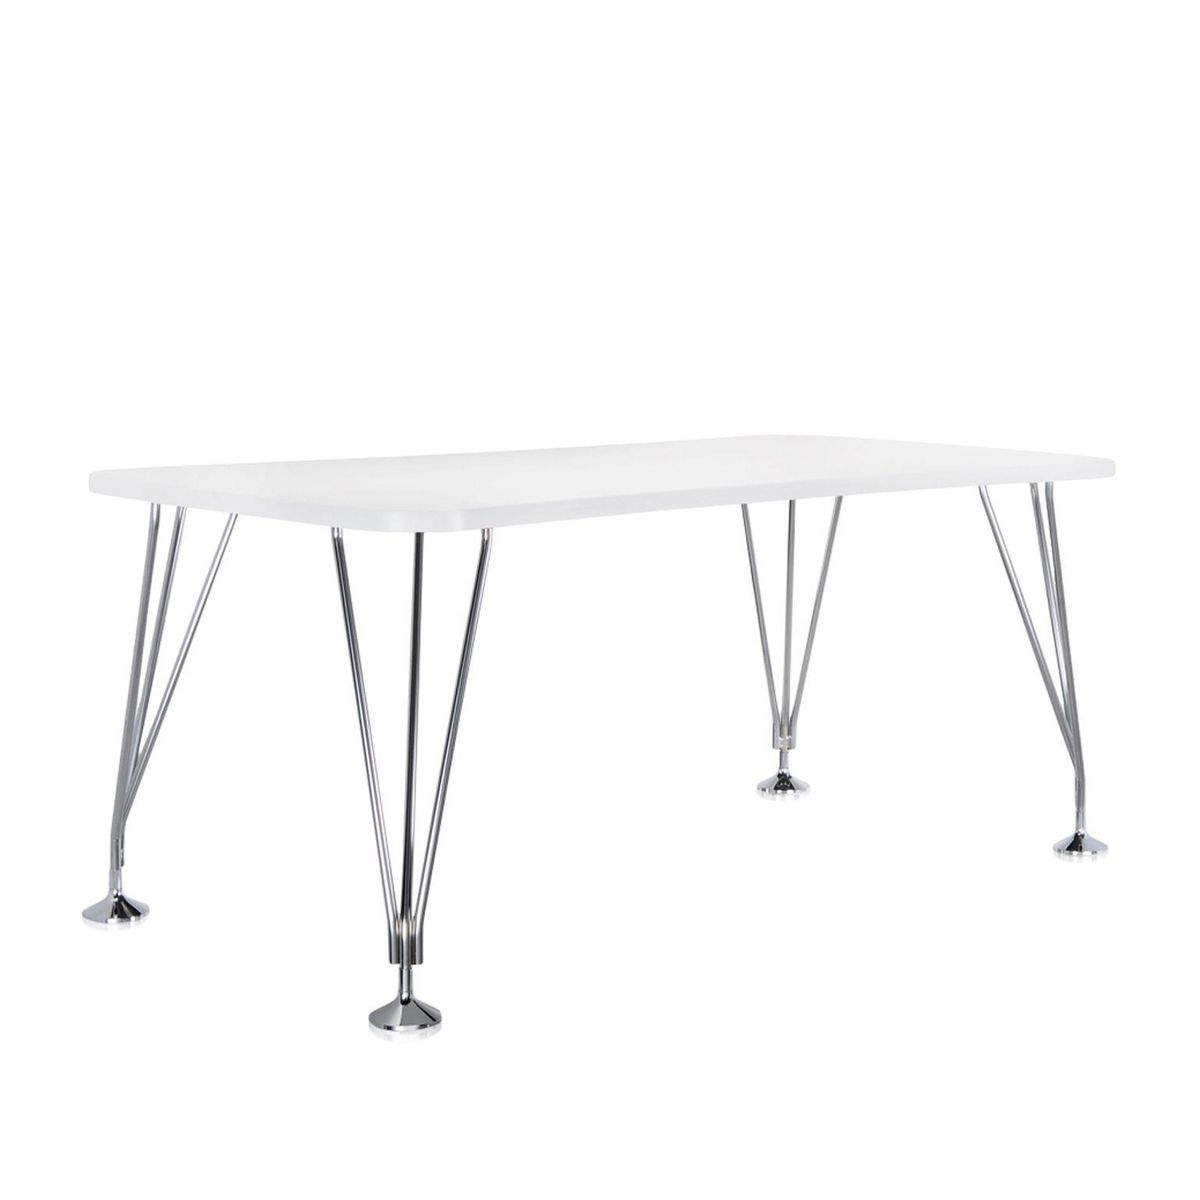 max table xcm  kartell  ambientedirectcom - kartell  max table xcm  zinc whiteframe chromed steelwith fixedfeet